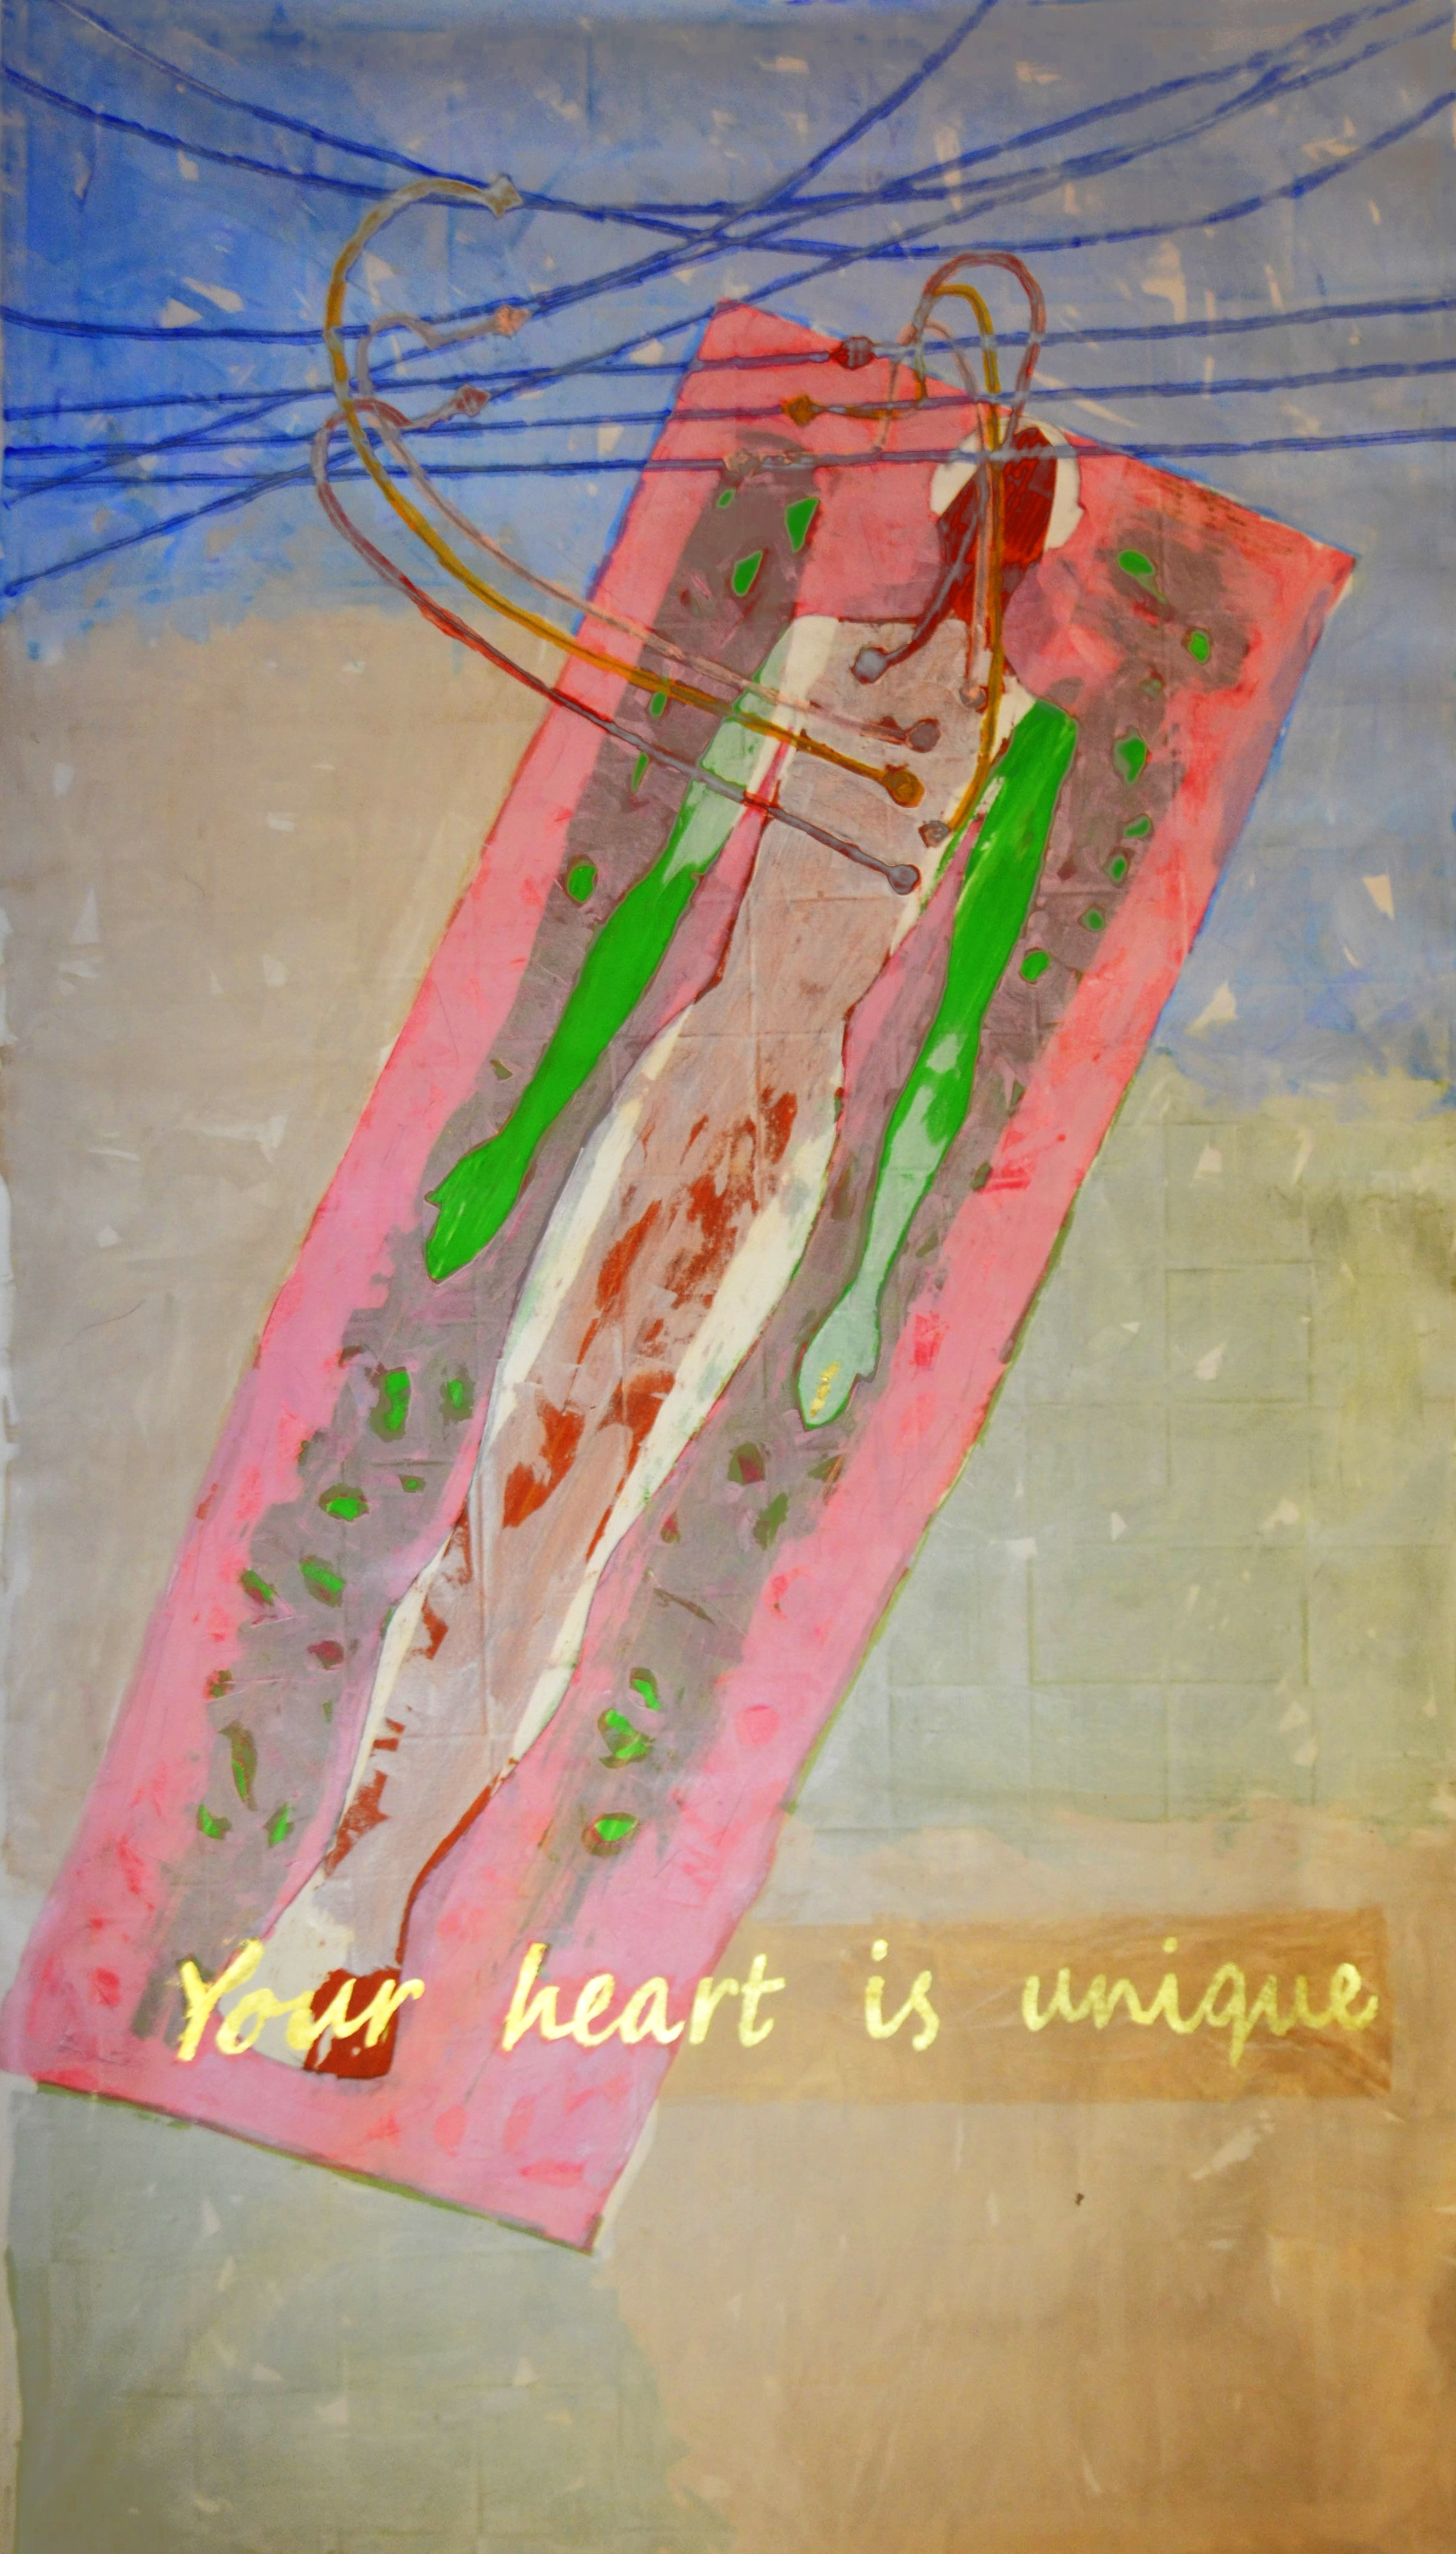 Your heart is unique, acrylic, tempra and gold leaf on canvas, 146 x 78.5 Inch 2019